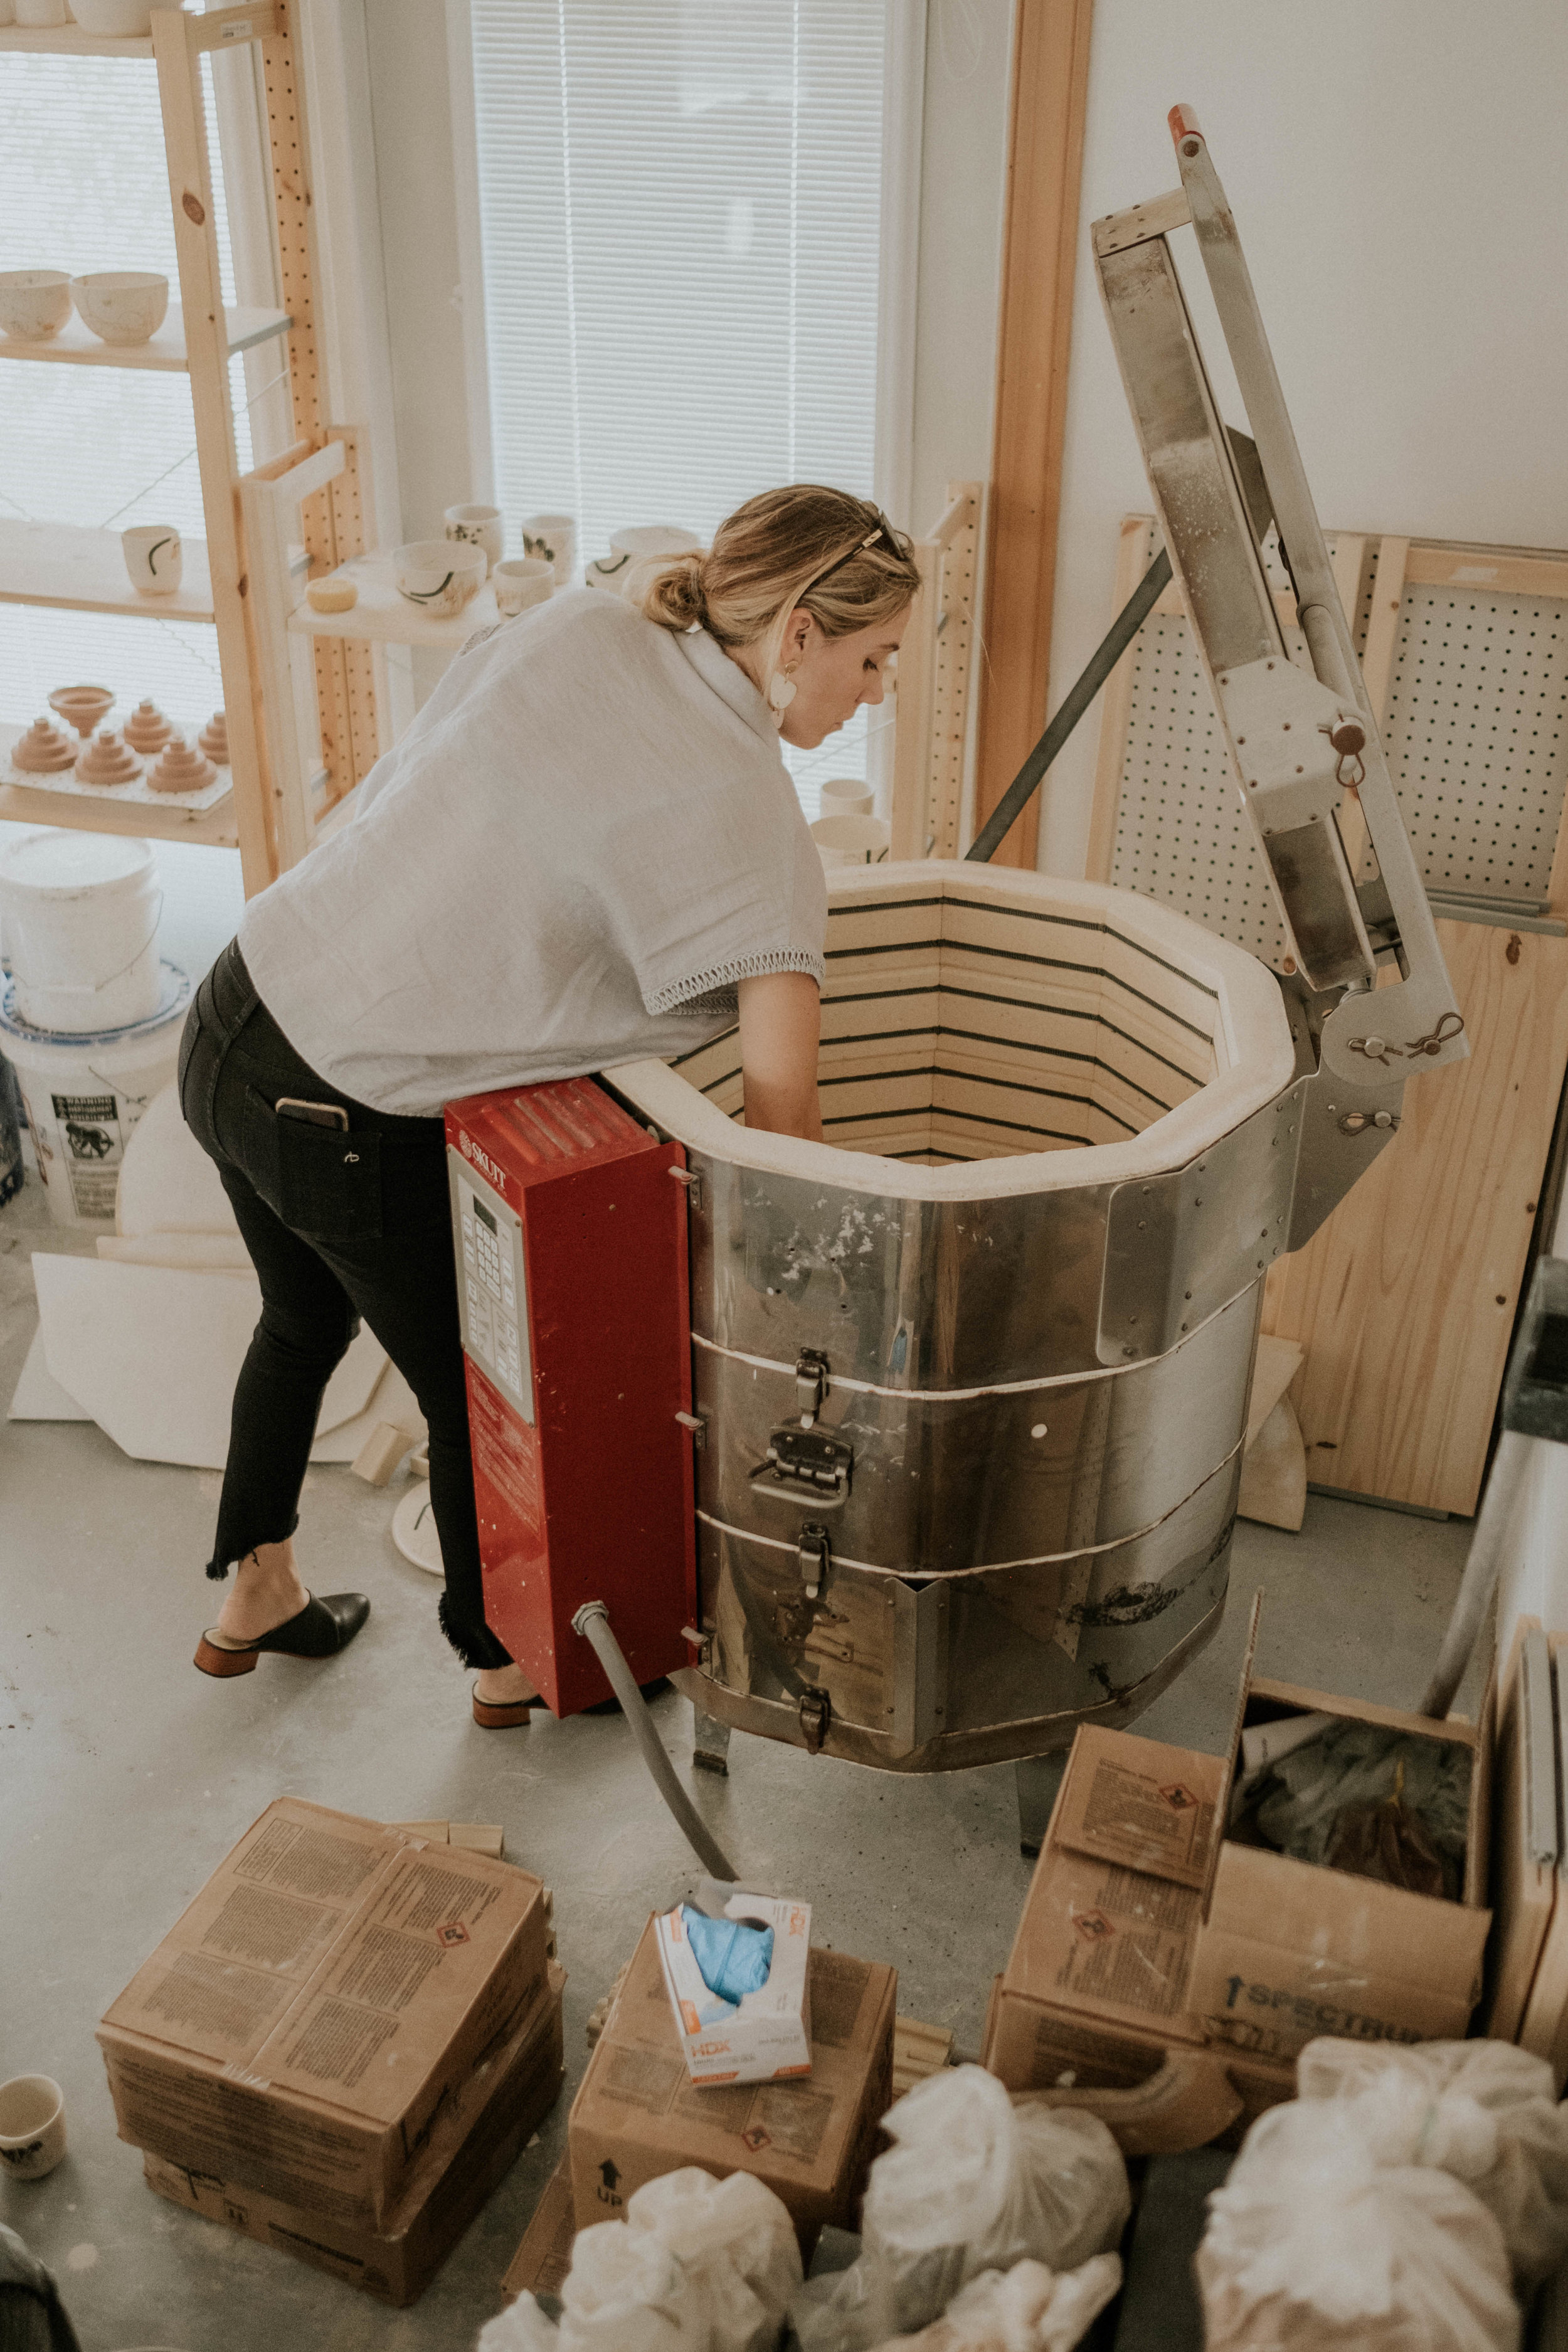 We knew this process would lead to some potential surprises in the finished products - as firing ceramics is often one big well-calculated experiment.